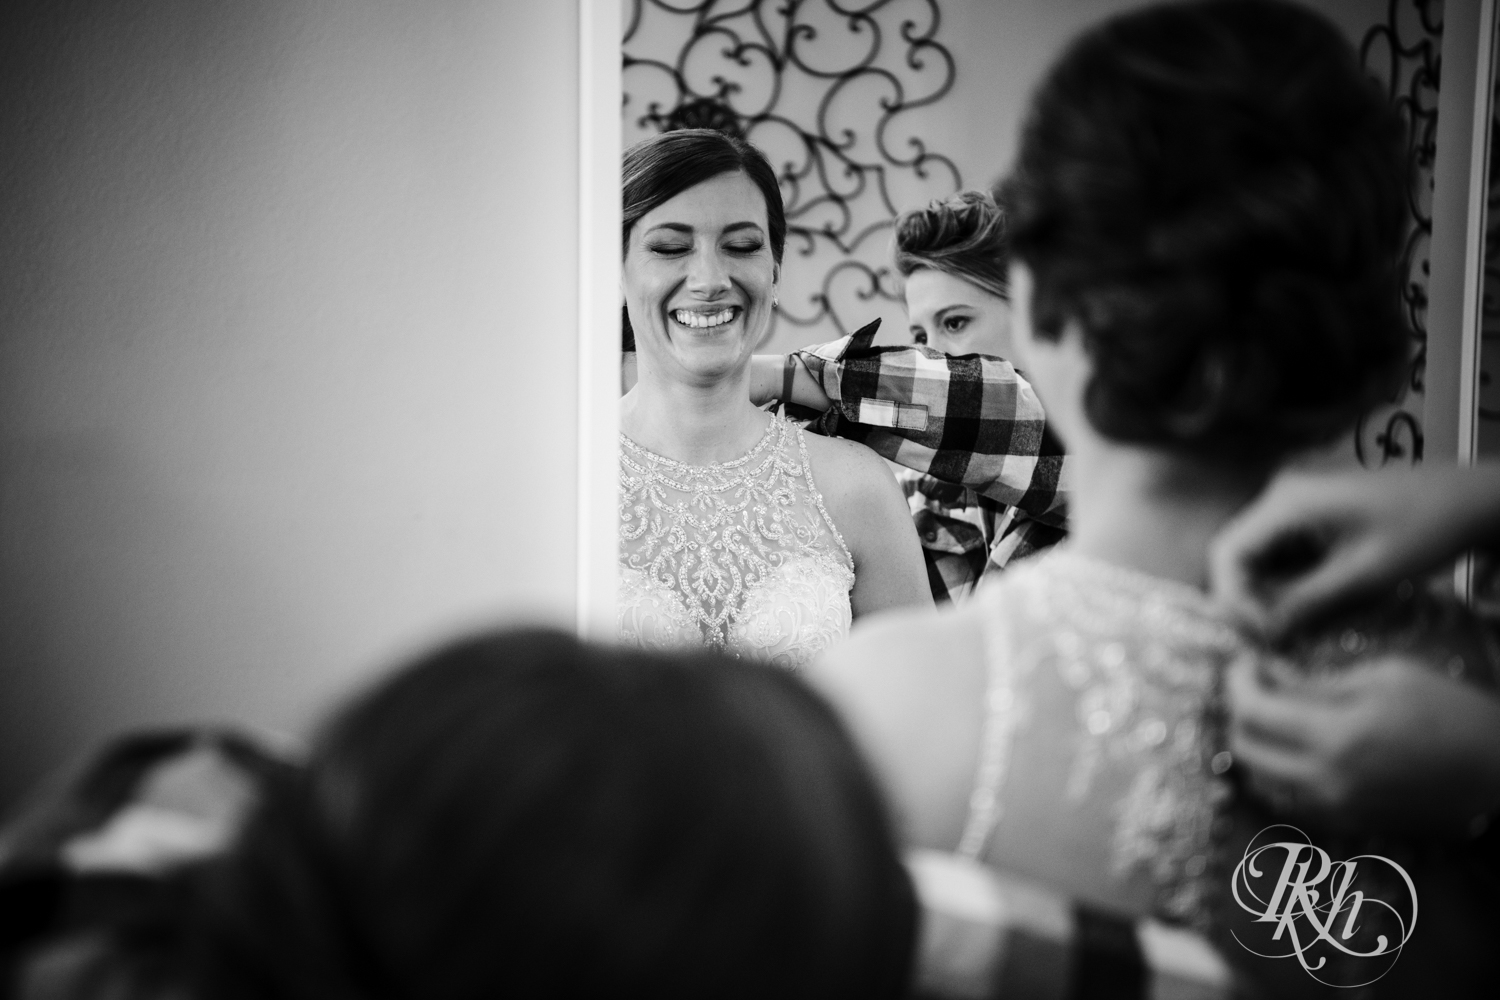 Jillian & Jared - Minnesota Wedding Photography - Lumber Exchange Event Center - RKH Images - Blog (9 of 87).jpg